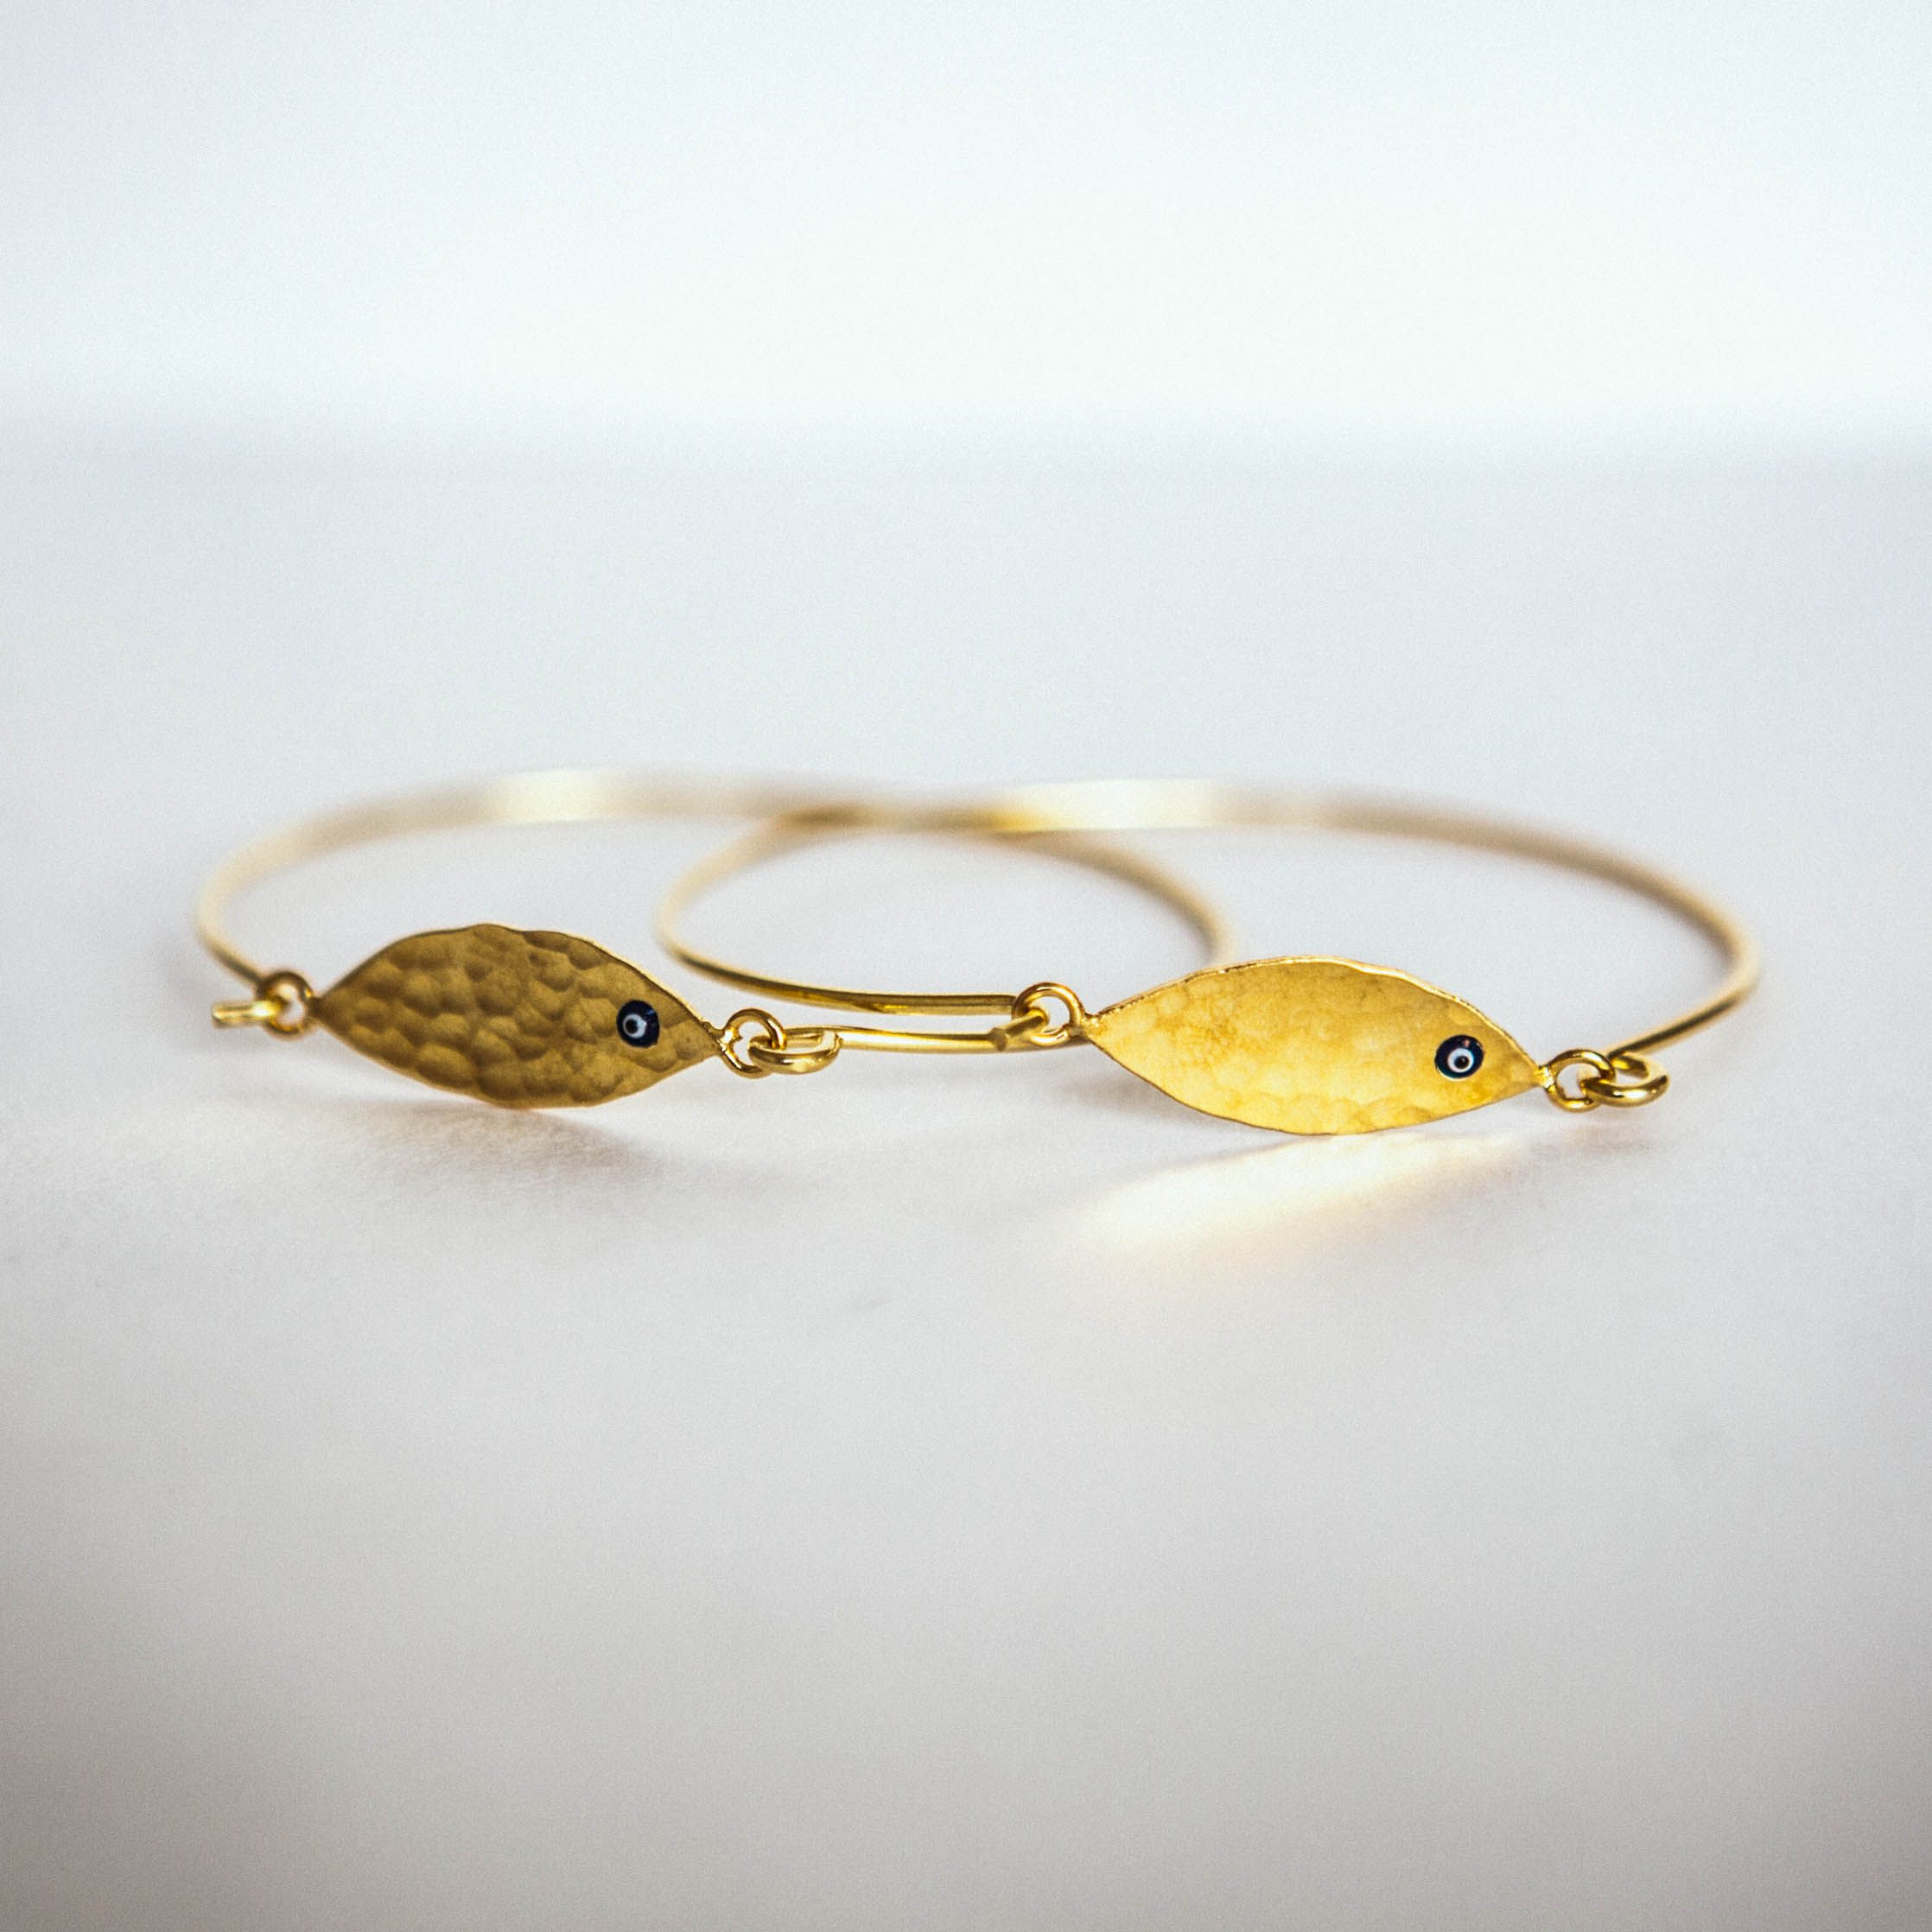 pieces the jewellery by dainty design most honeytrend of bracelet circle and gold bestwishesjewellery delicate